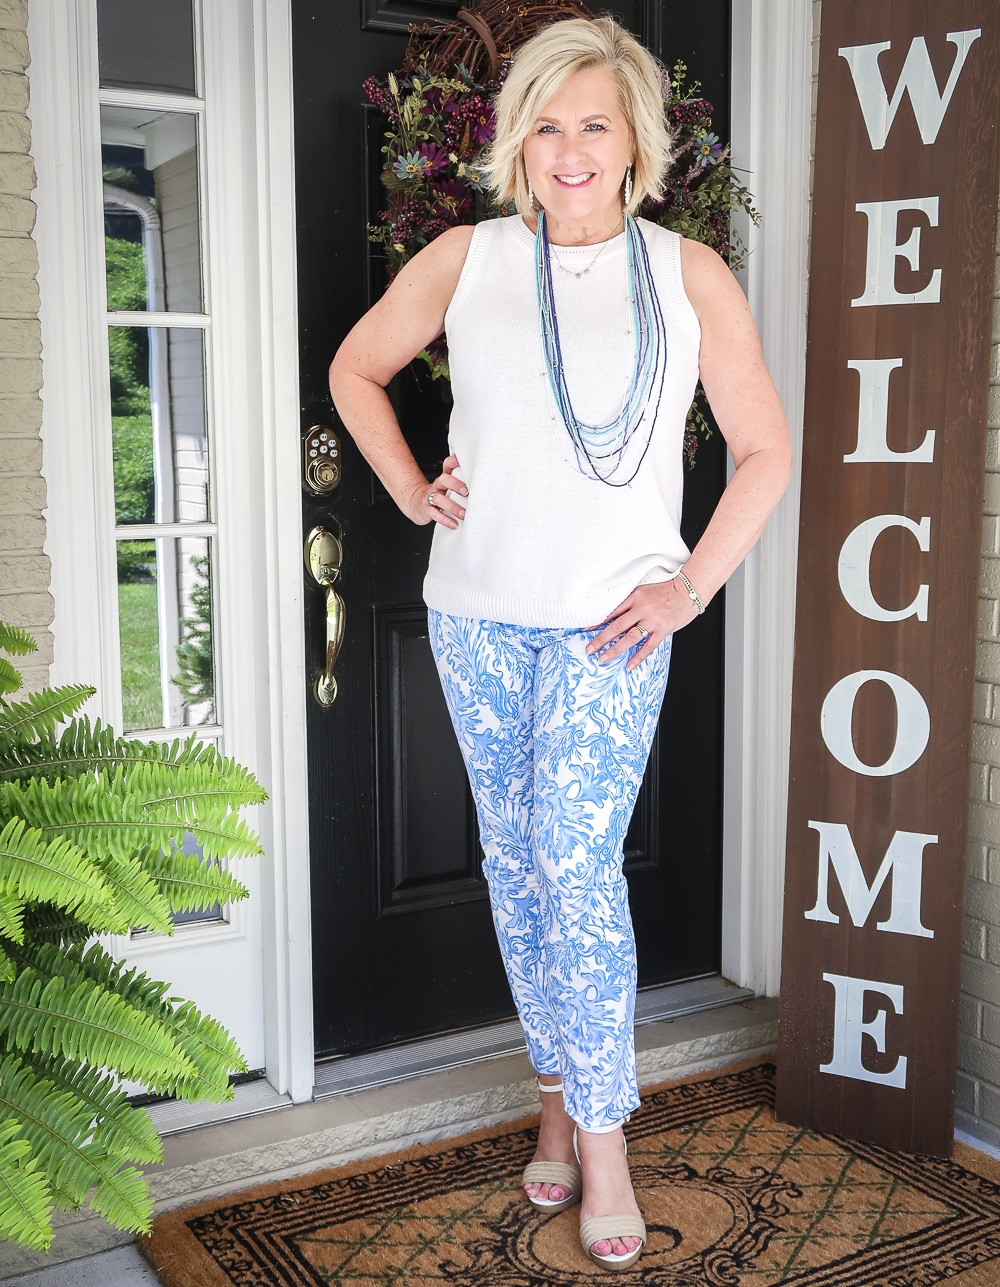 Fashion Blogger 50 Is Not Old is wearing a classic blue and white outfit. A white sweater, blue and white ankle pants from Lilly Pulitzer and espadrille wedges